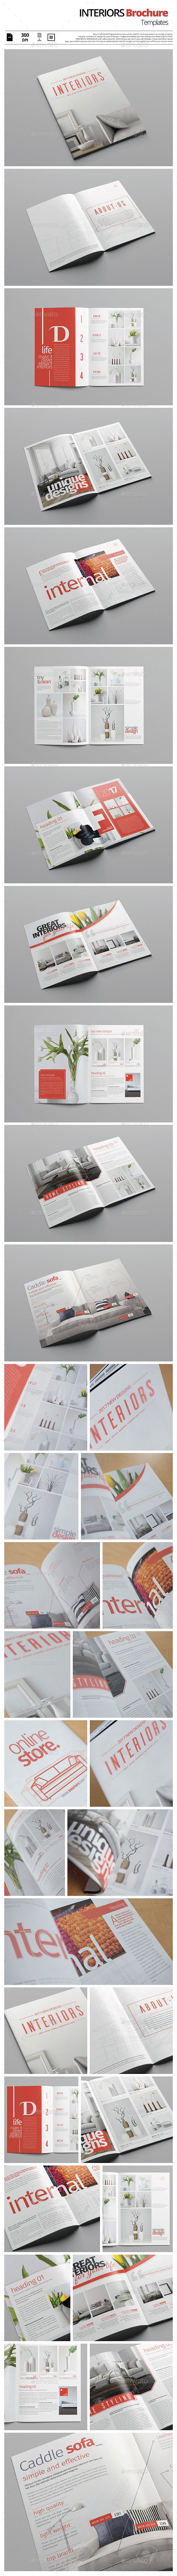 Interiors Brochure  #modern #portfolio #product • Available here → http://graphicriver.net/item/interiors-brochure/15866204?ref=pxcr